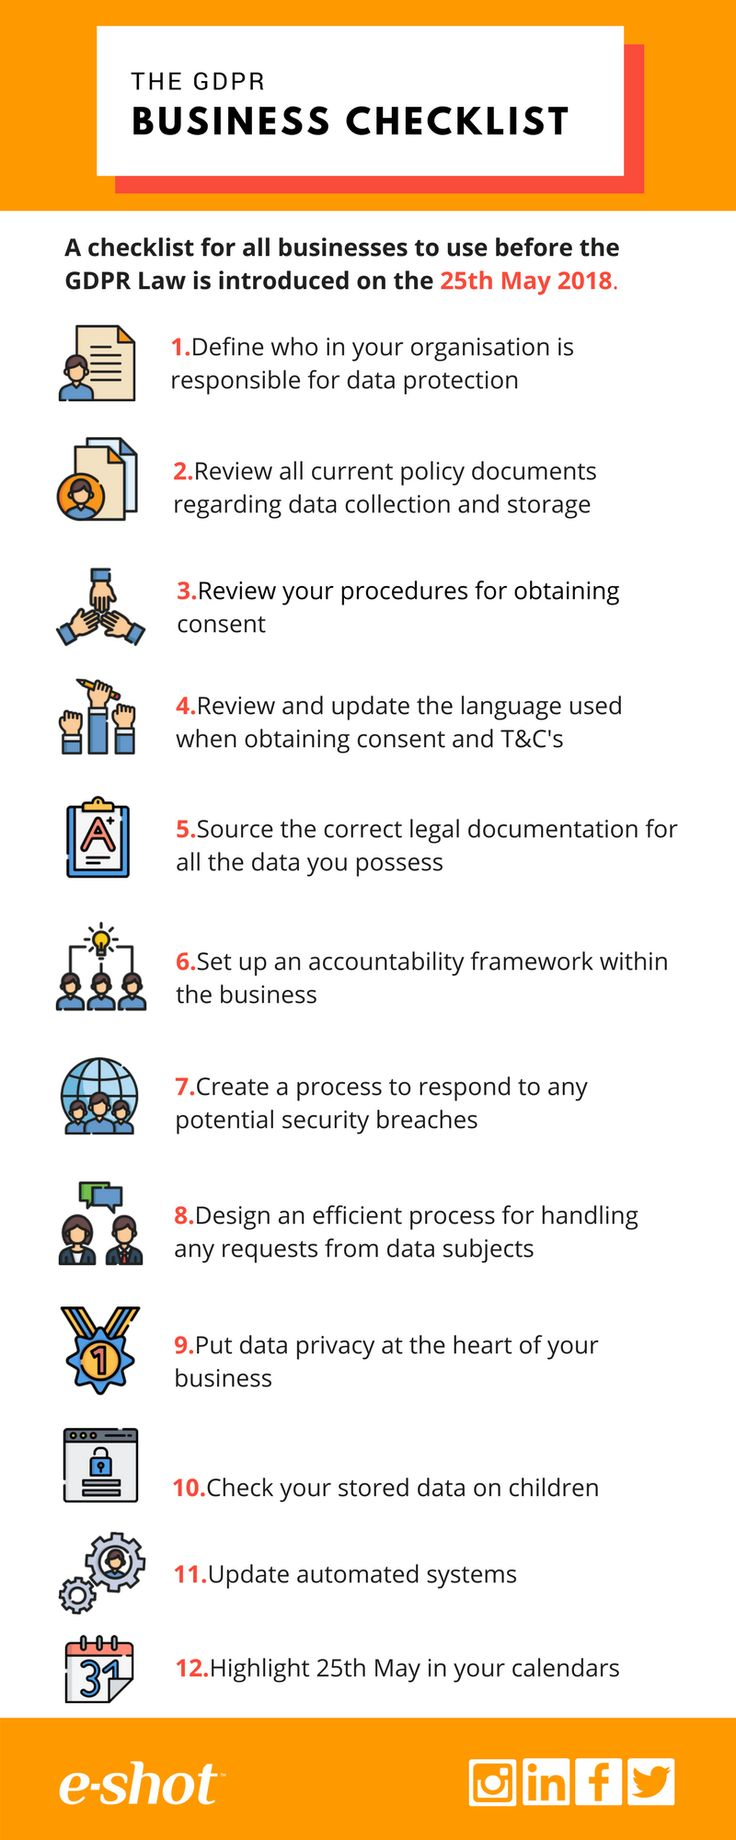 Use our #GDPR #checklist to ensure your business processes are in-line for